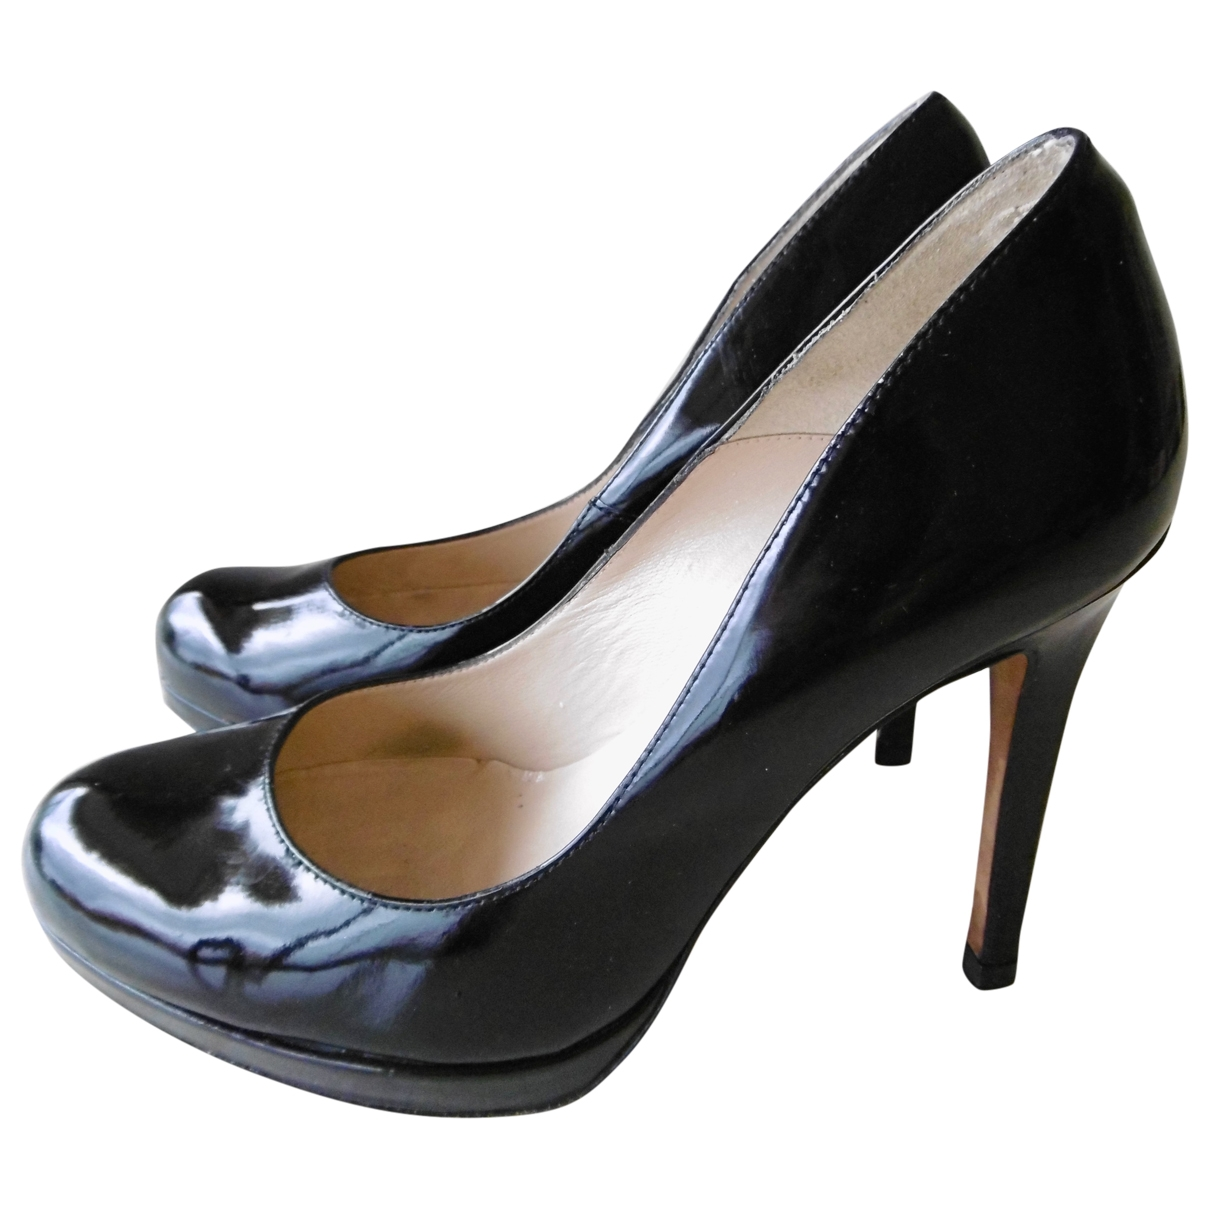 Lk Bennett \N Pumps in  Schwarz Lackleder